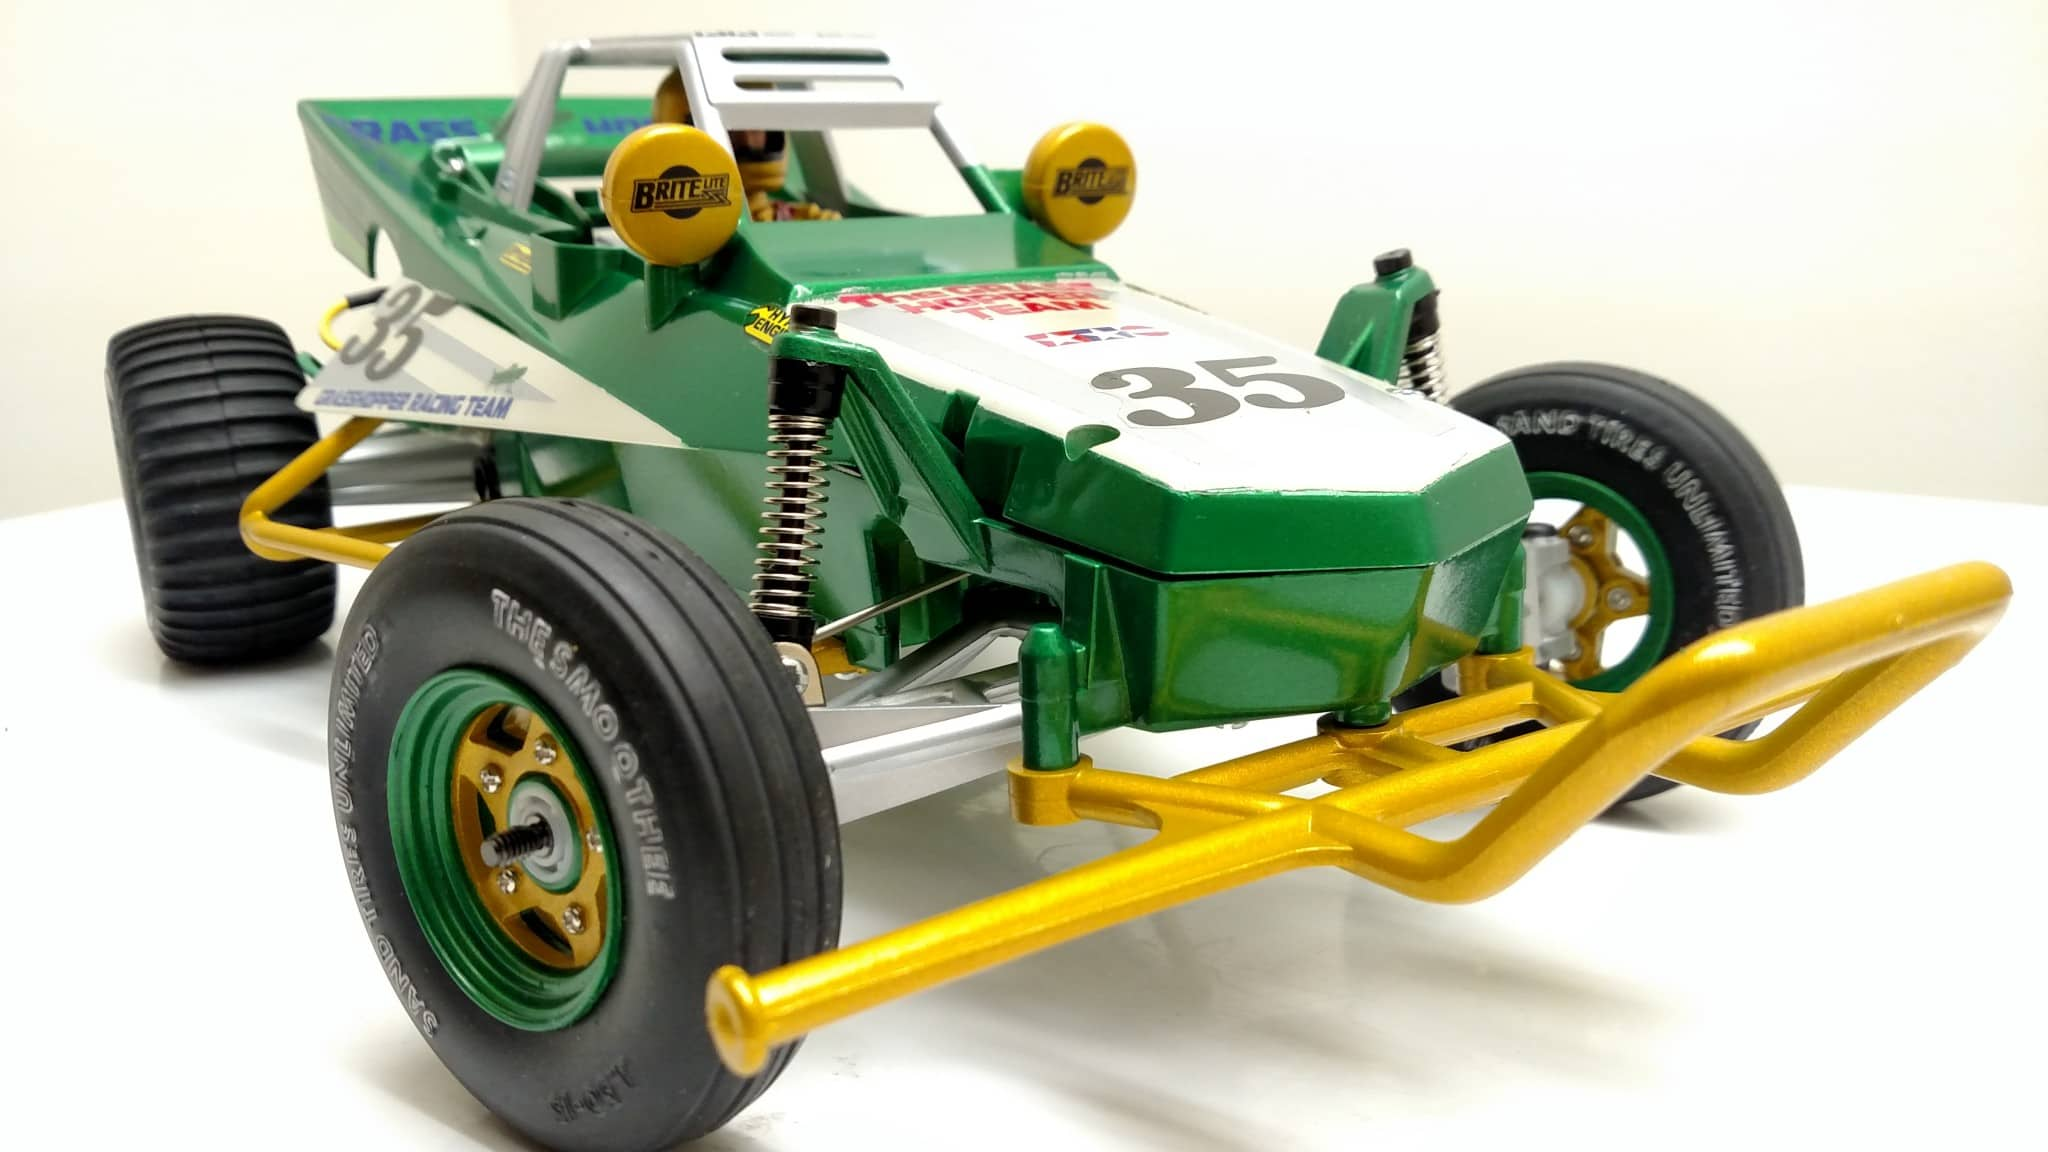 A Clean, Green Tamiya Grasshopper Build from 2RCProductions